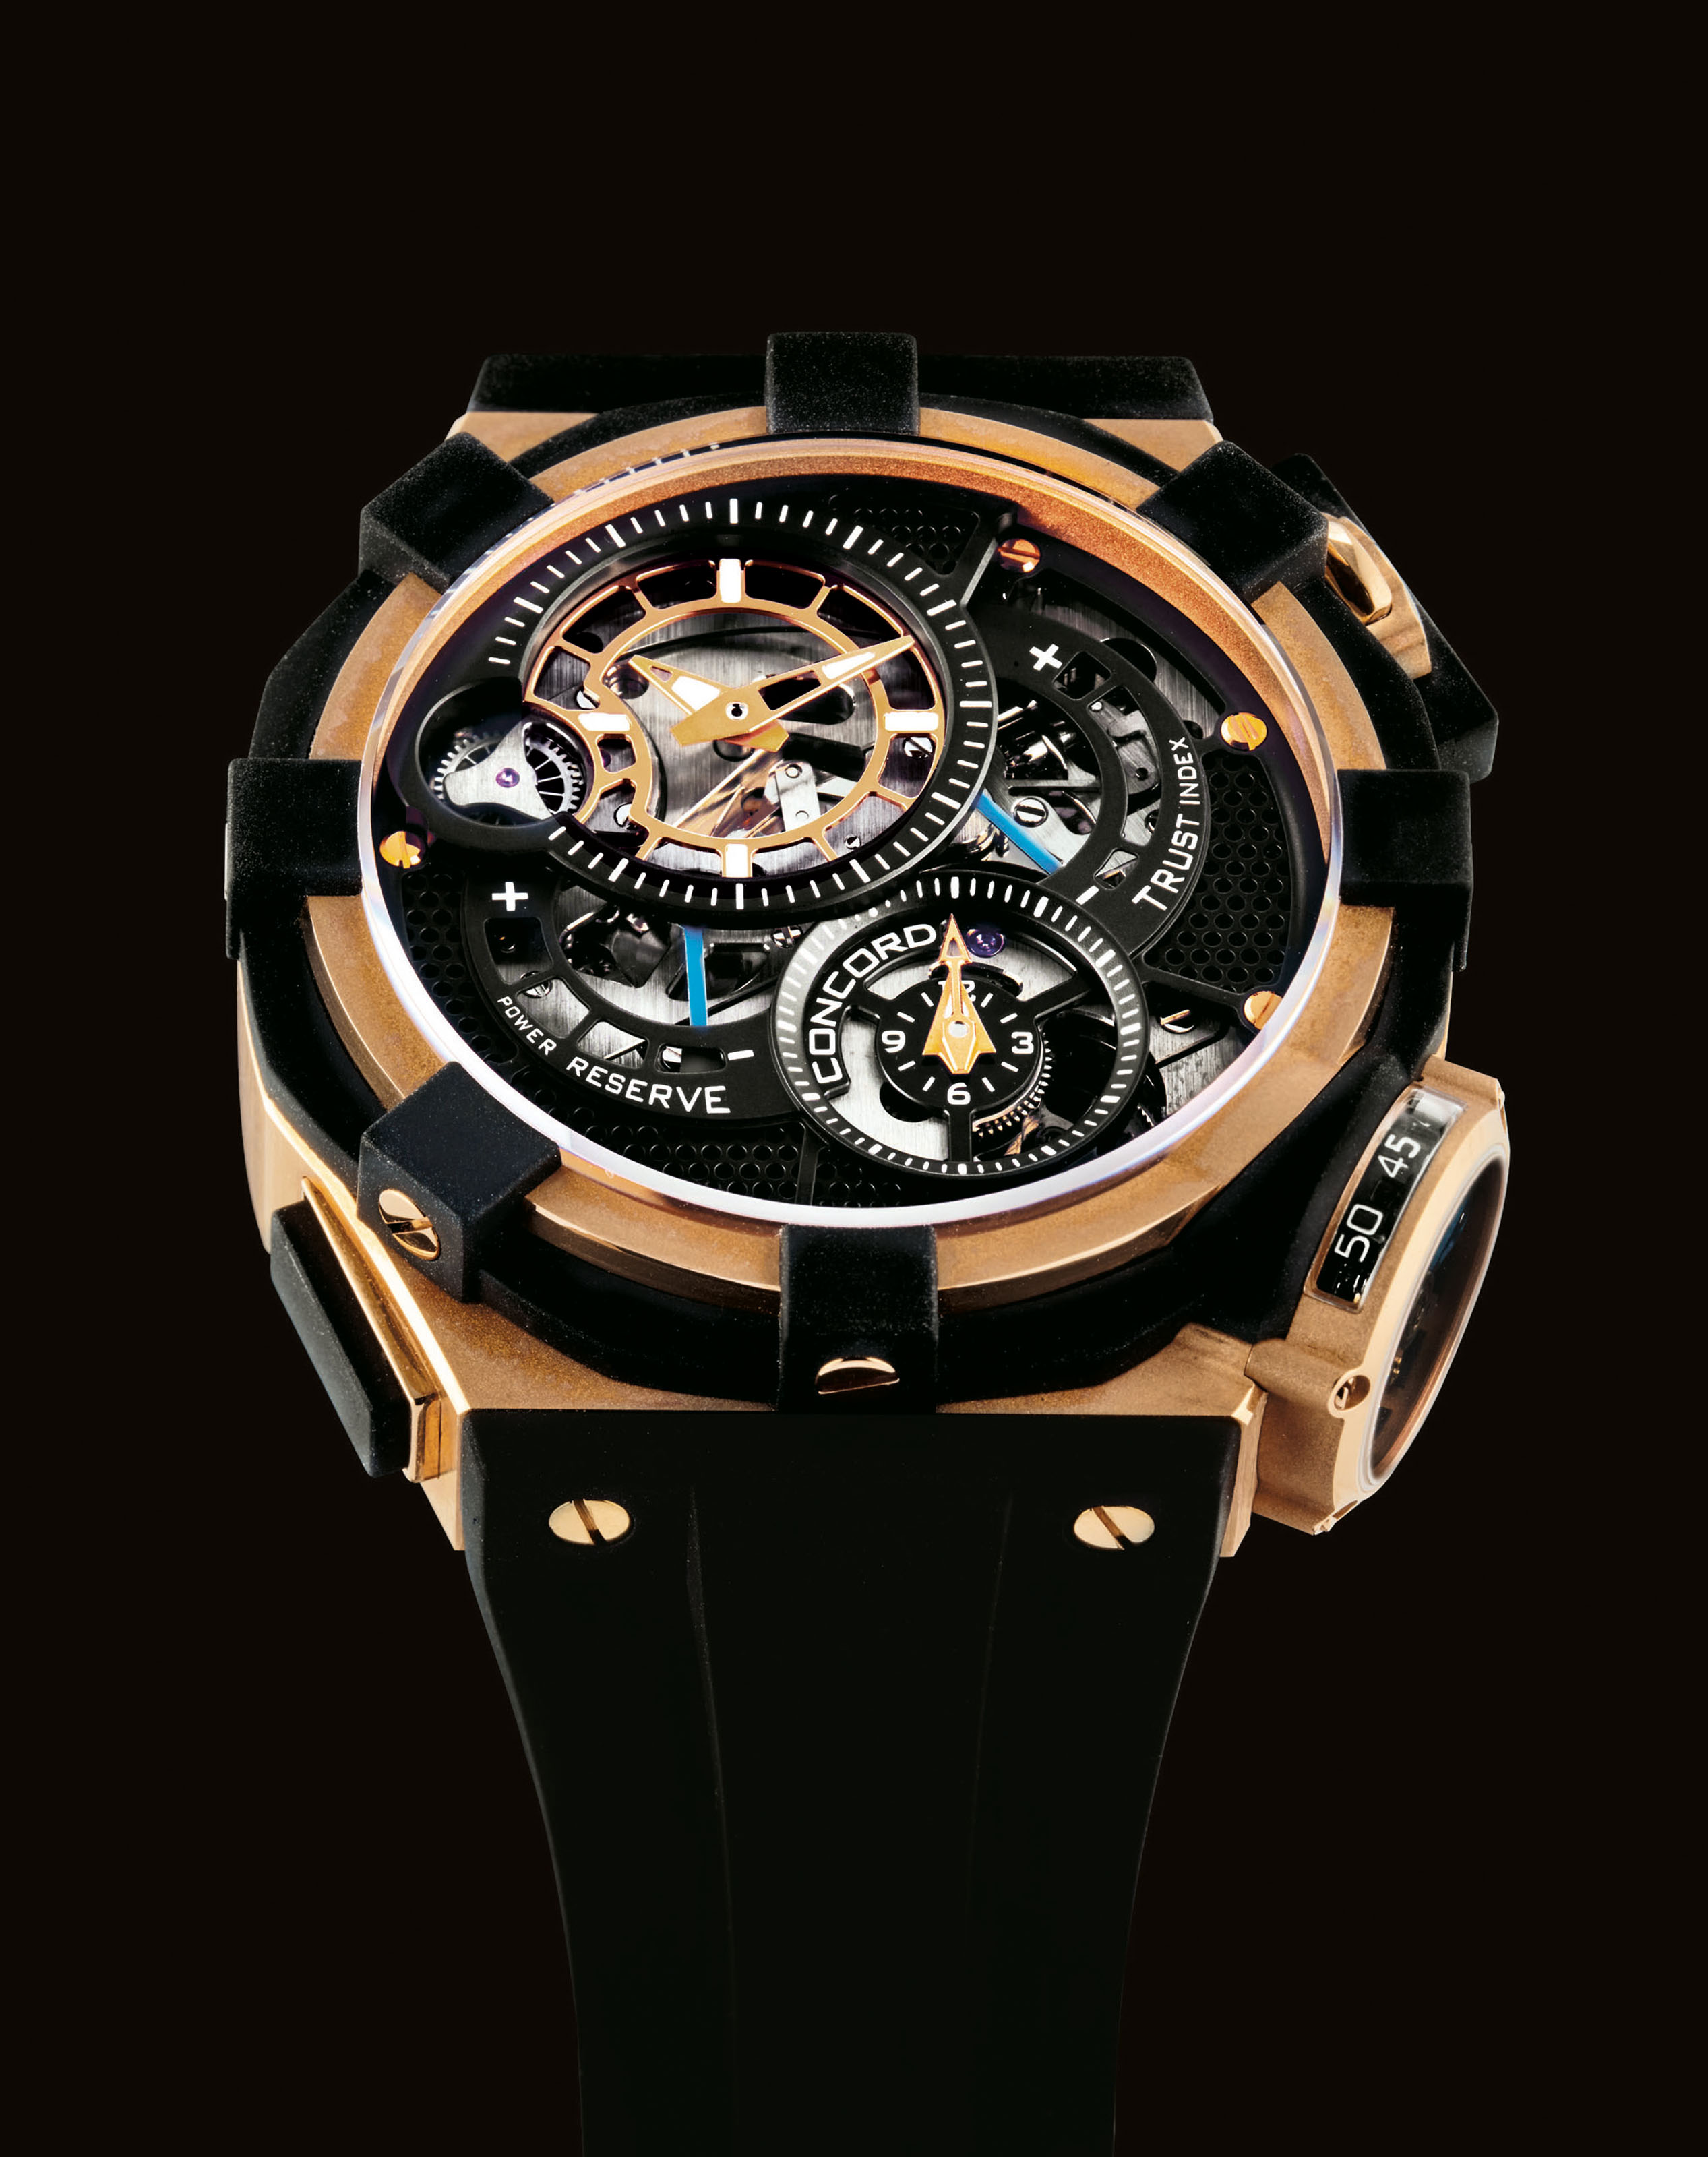 CONCORD. A FINE AND OVERSIZED 18K PINK GOLD AND RUBBER LIMITED EDITION SEMI-SKELETONISED FLYBACK CHRONOGRAPH TOURBILLON WRISTWATCH WITH POWER RESERVE AND TRUST INDEX INDICATIONS